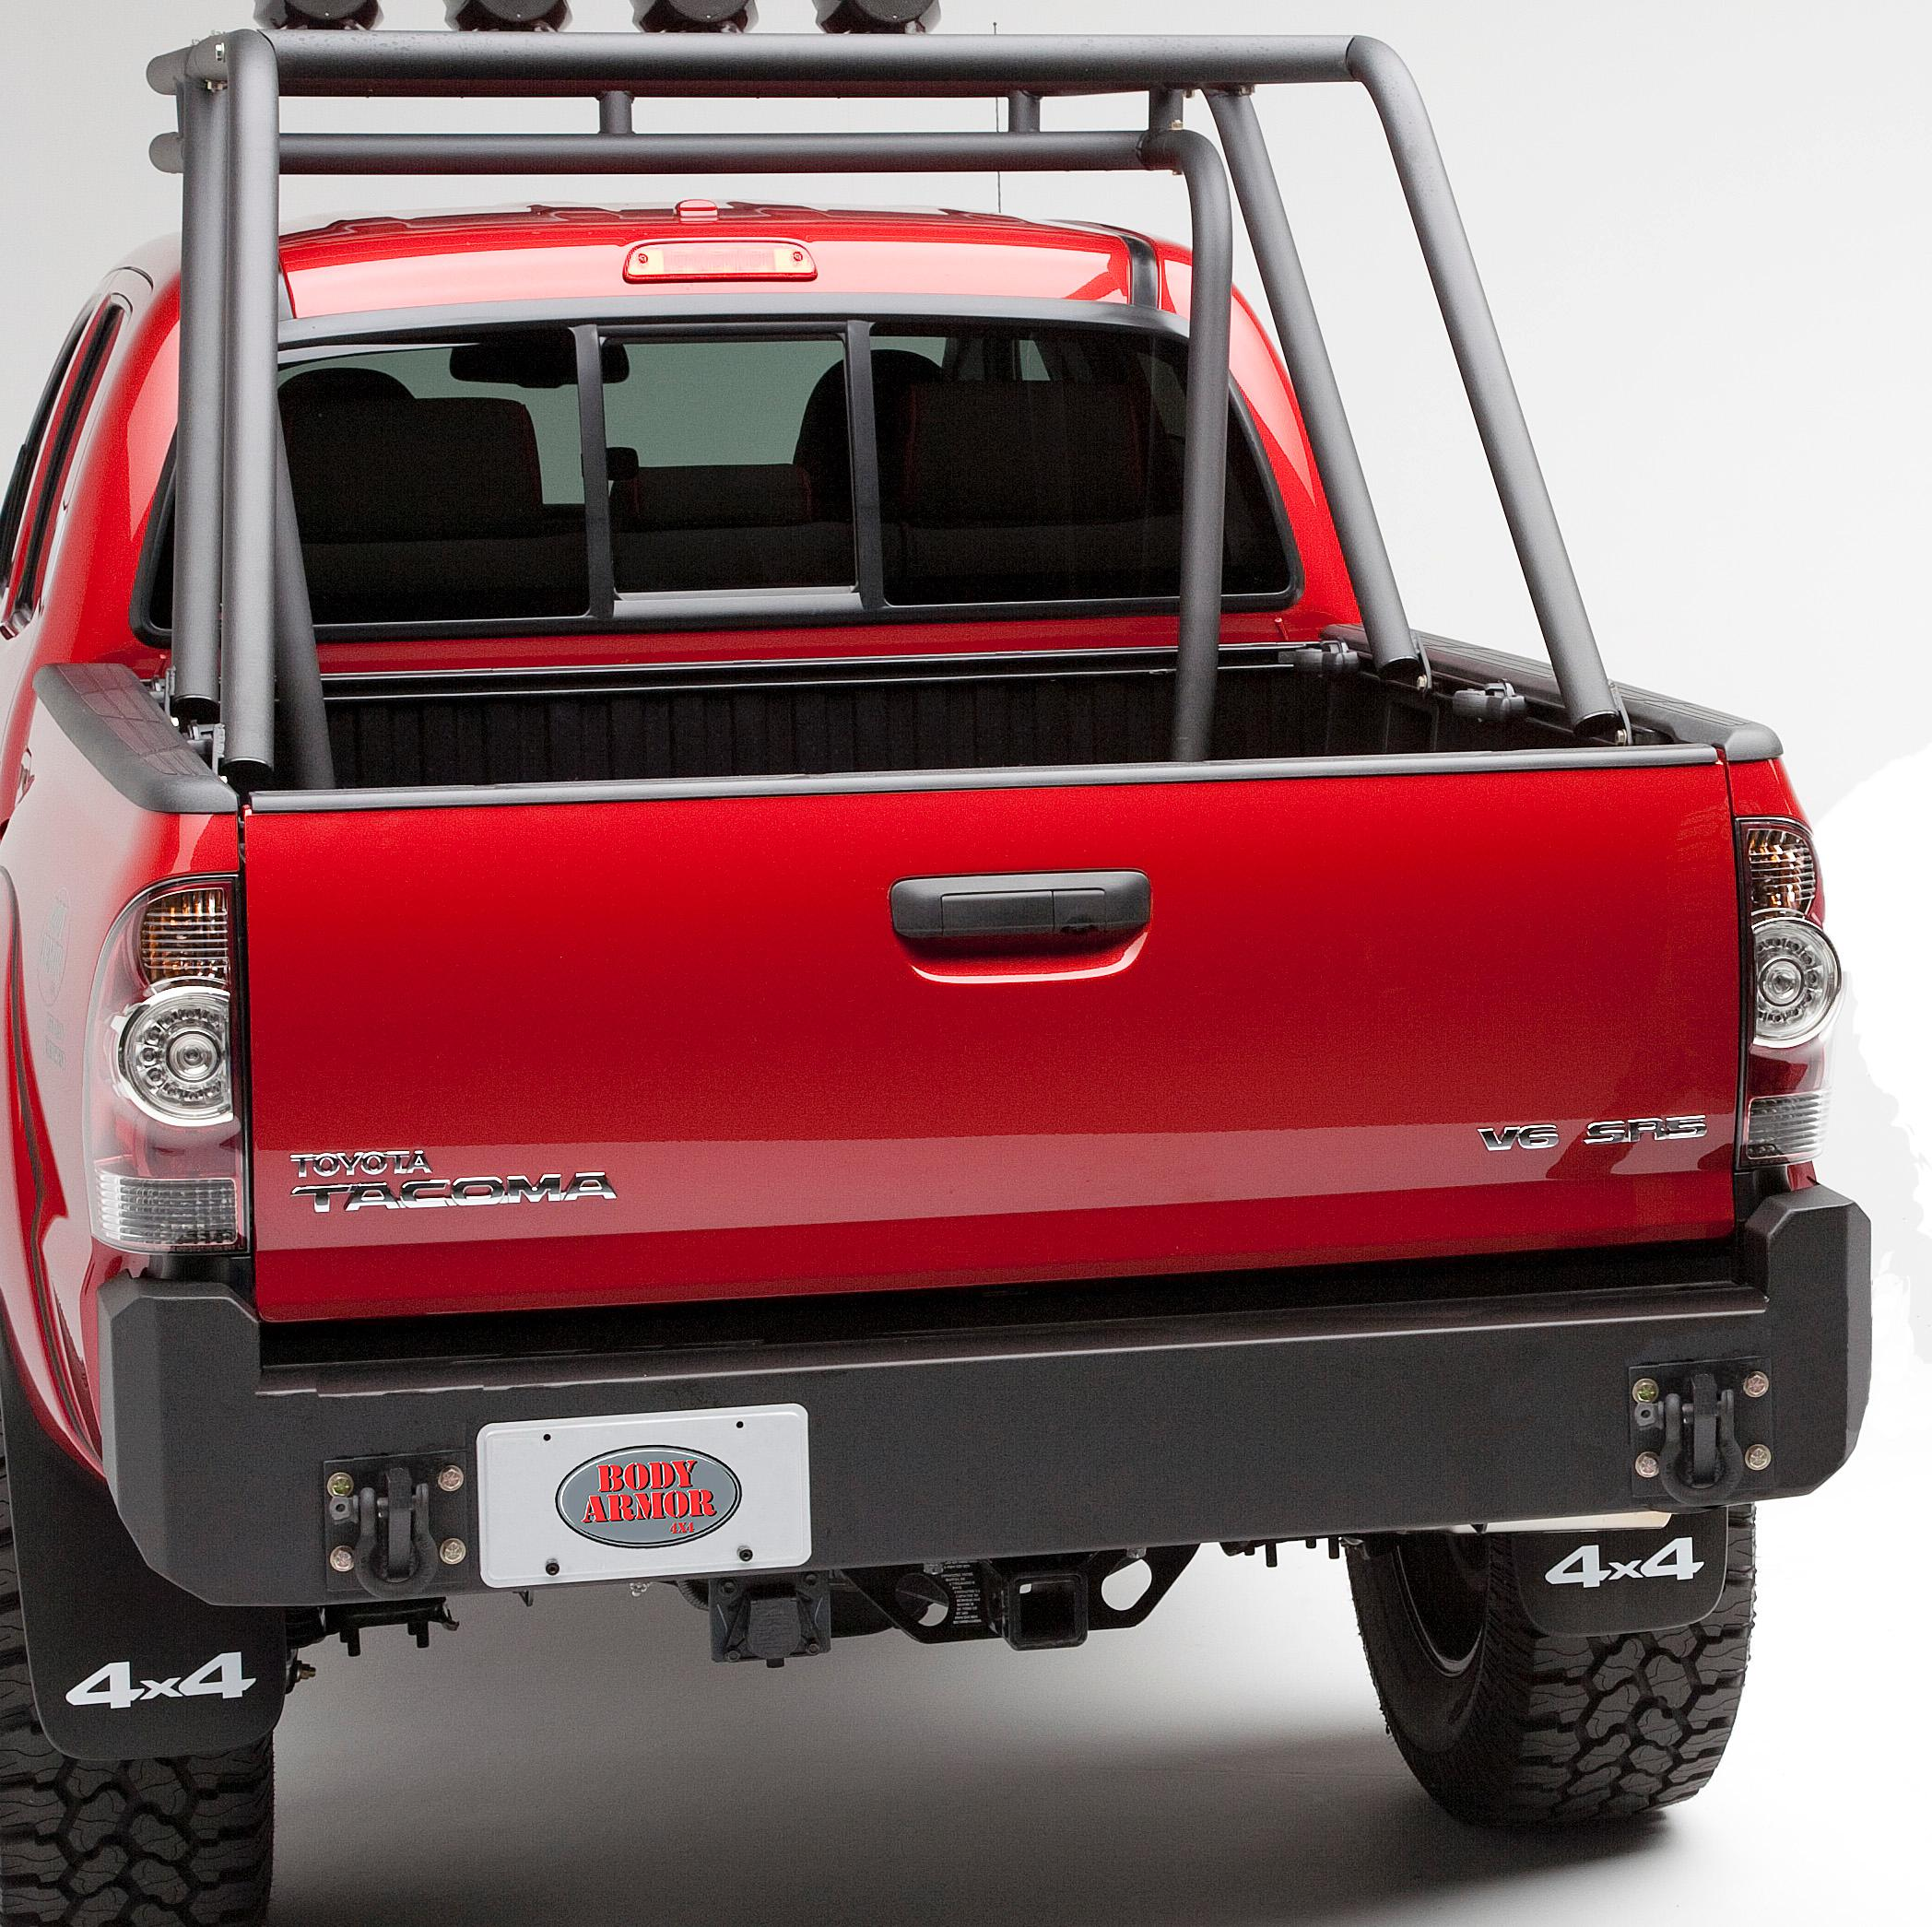 Black Body Armor 4x4 TC-5293 Steel Swing Arm Tire Carrier For TC-2961-2005-2013 Toyota Tacoma